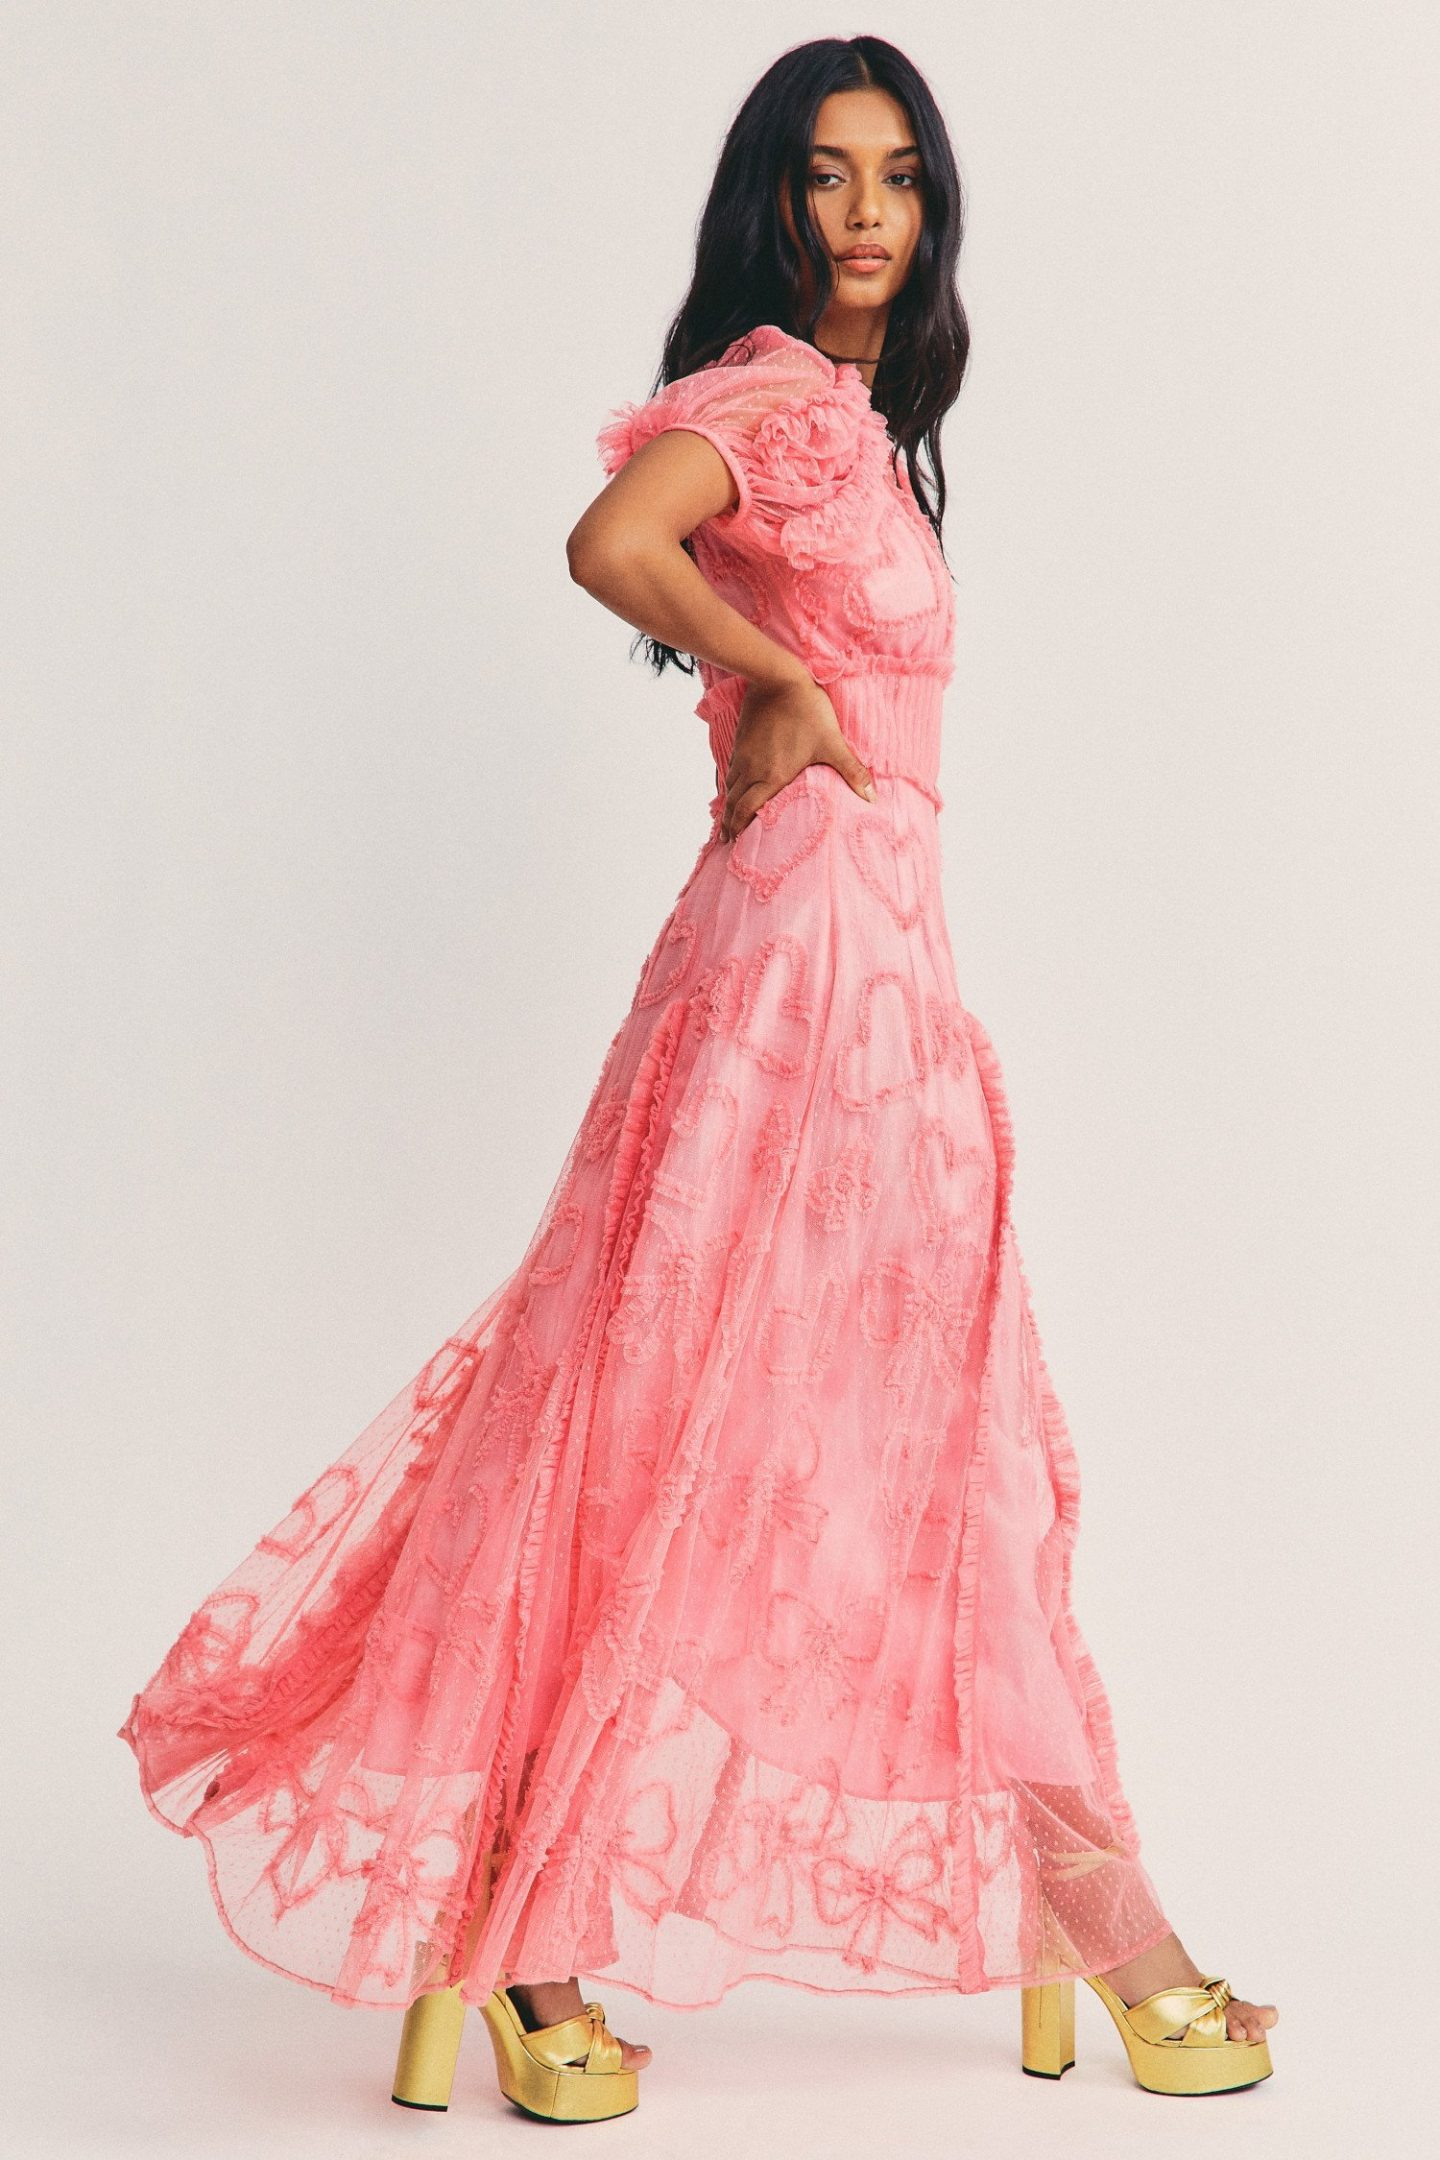 Pink cottagecore maxi dresses with hearts